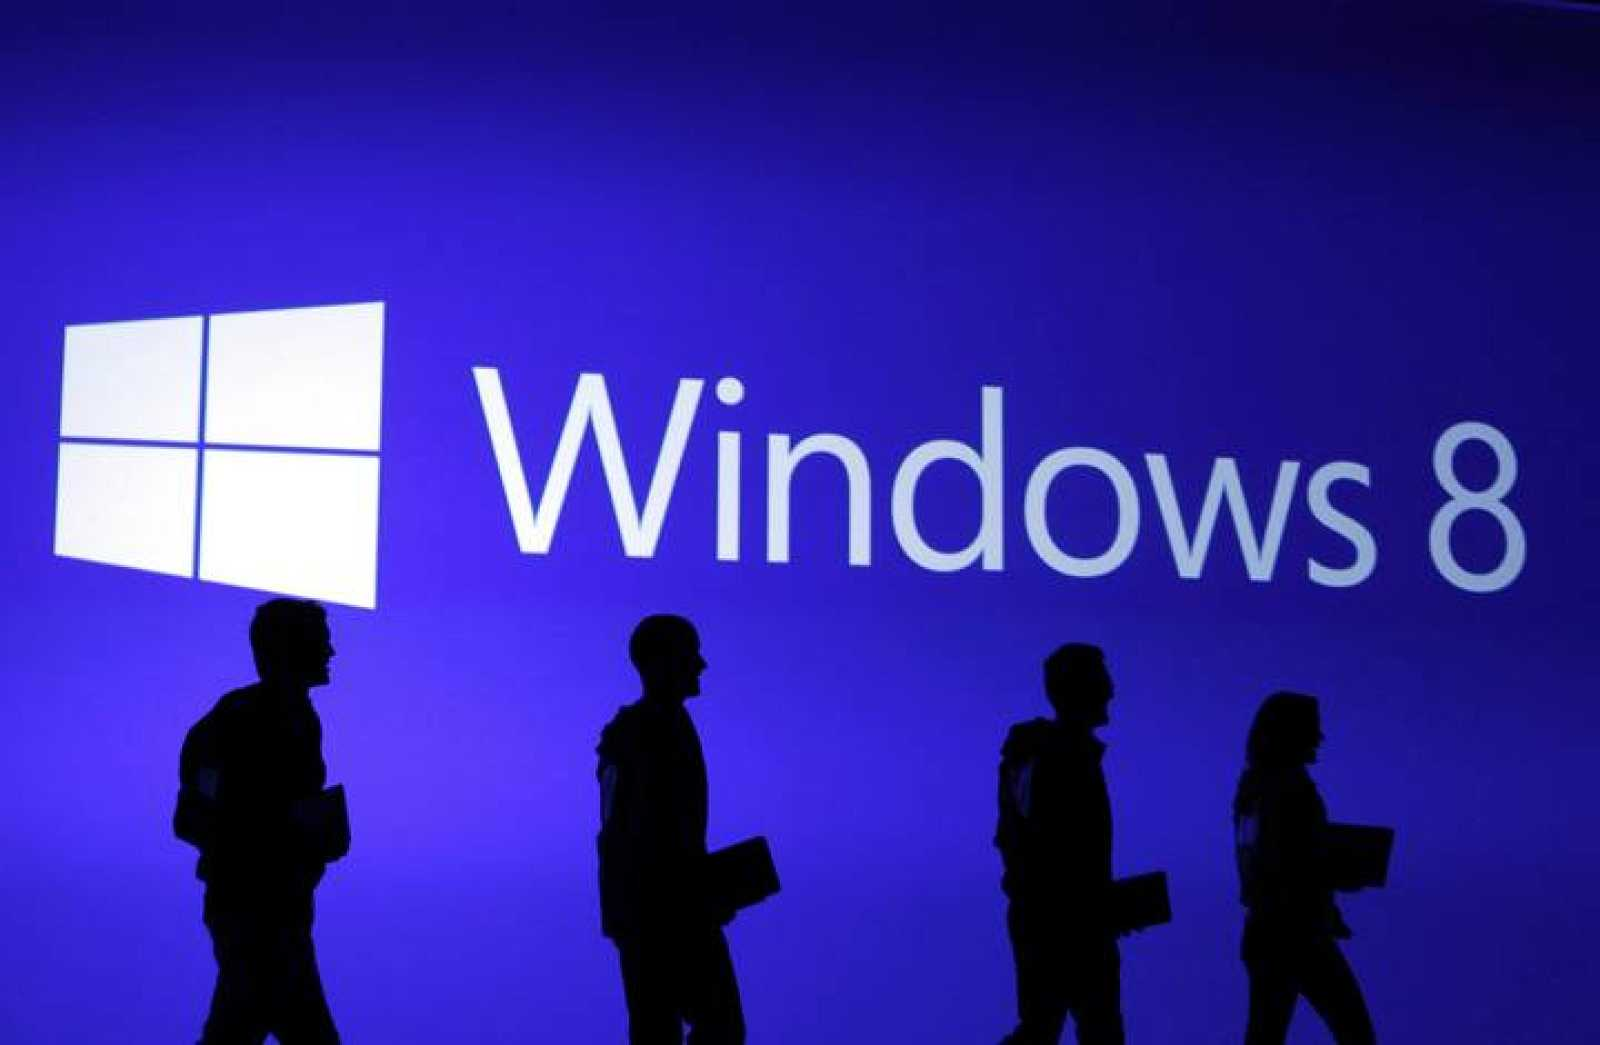 Guests are silhouetted at  the launch event of Windows 8 operating system in New York